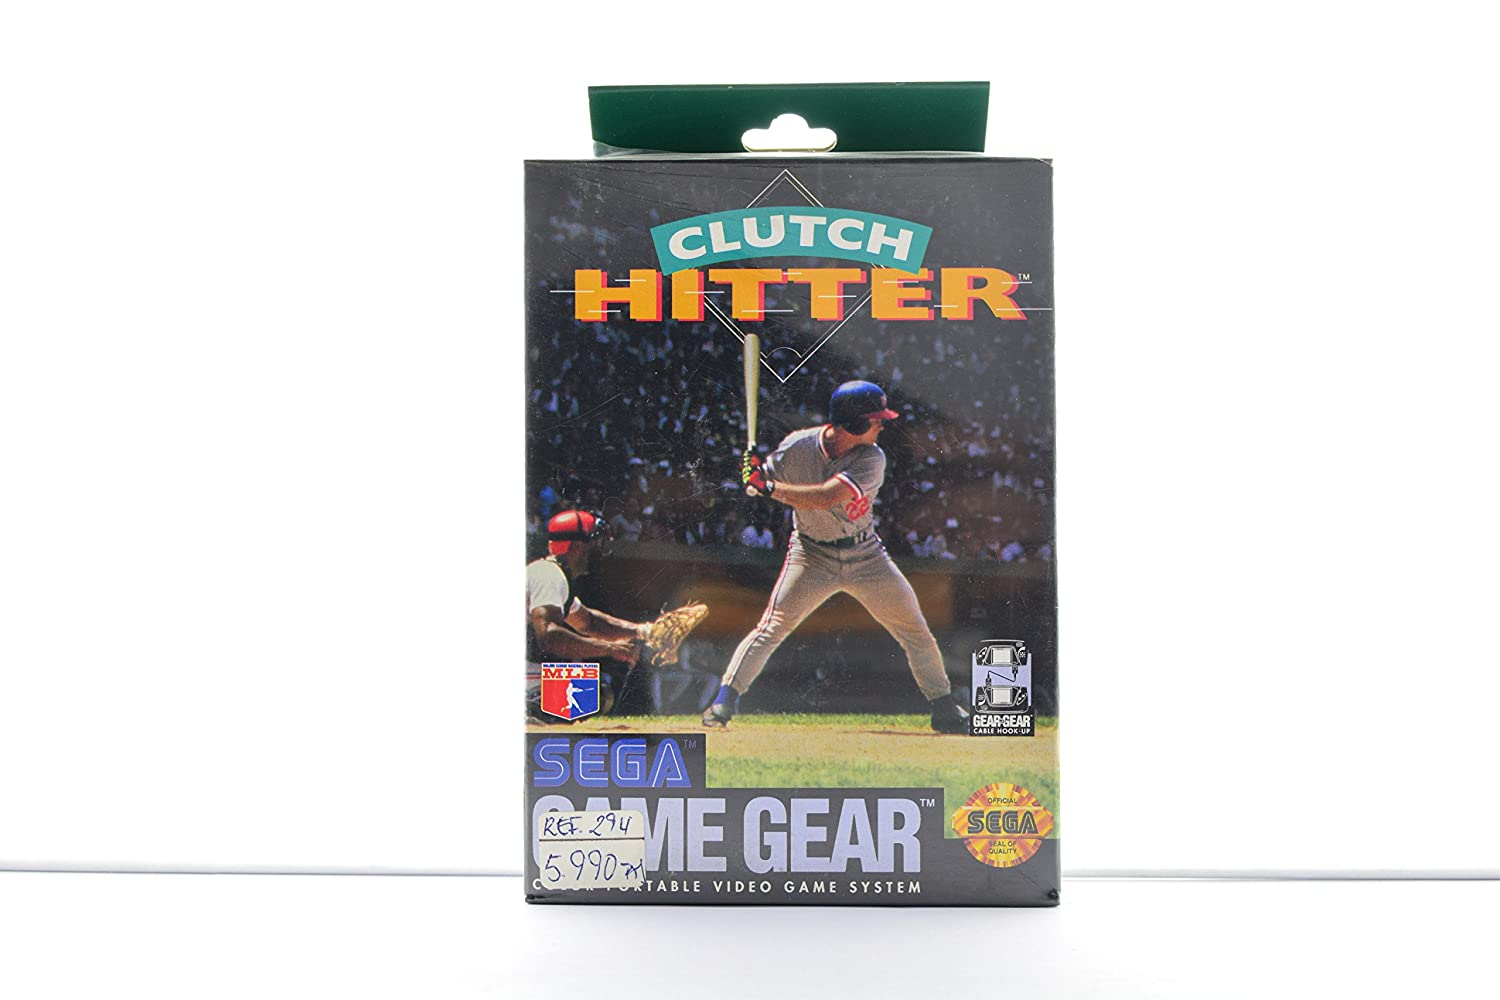 Clutch Hitter - Sega Max 58% OFF Gear Game NEW before selling ☆